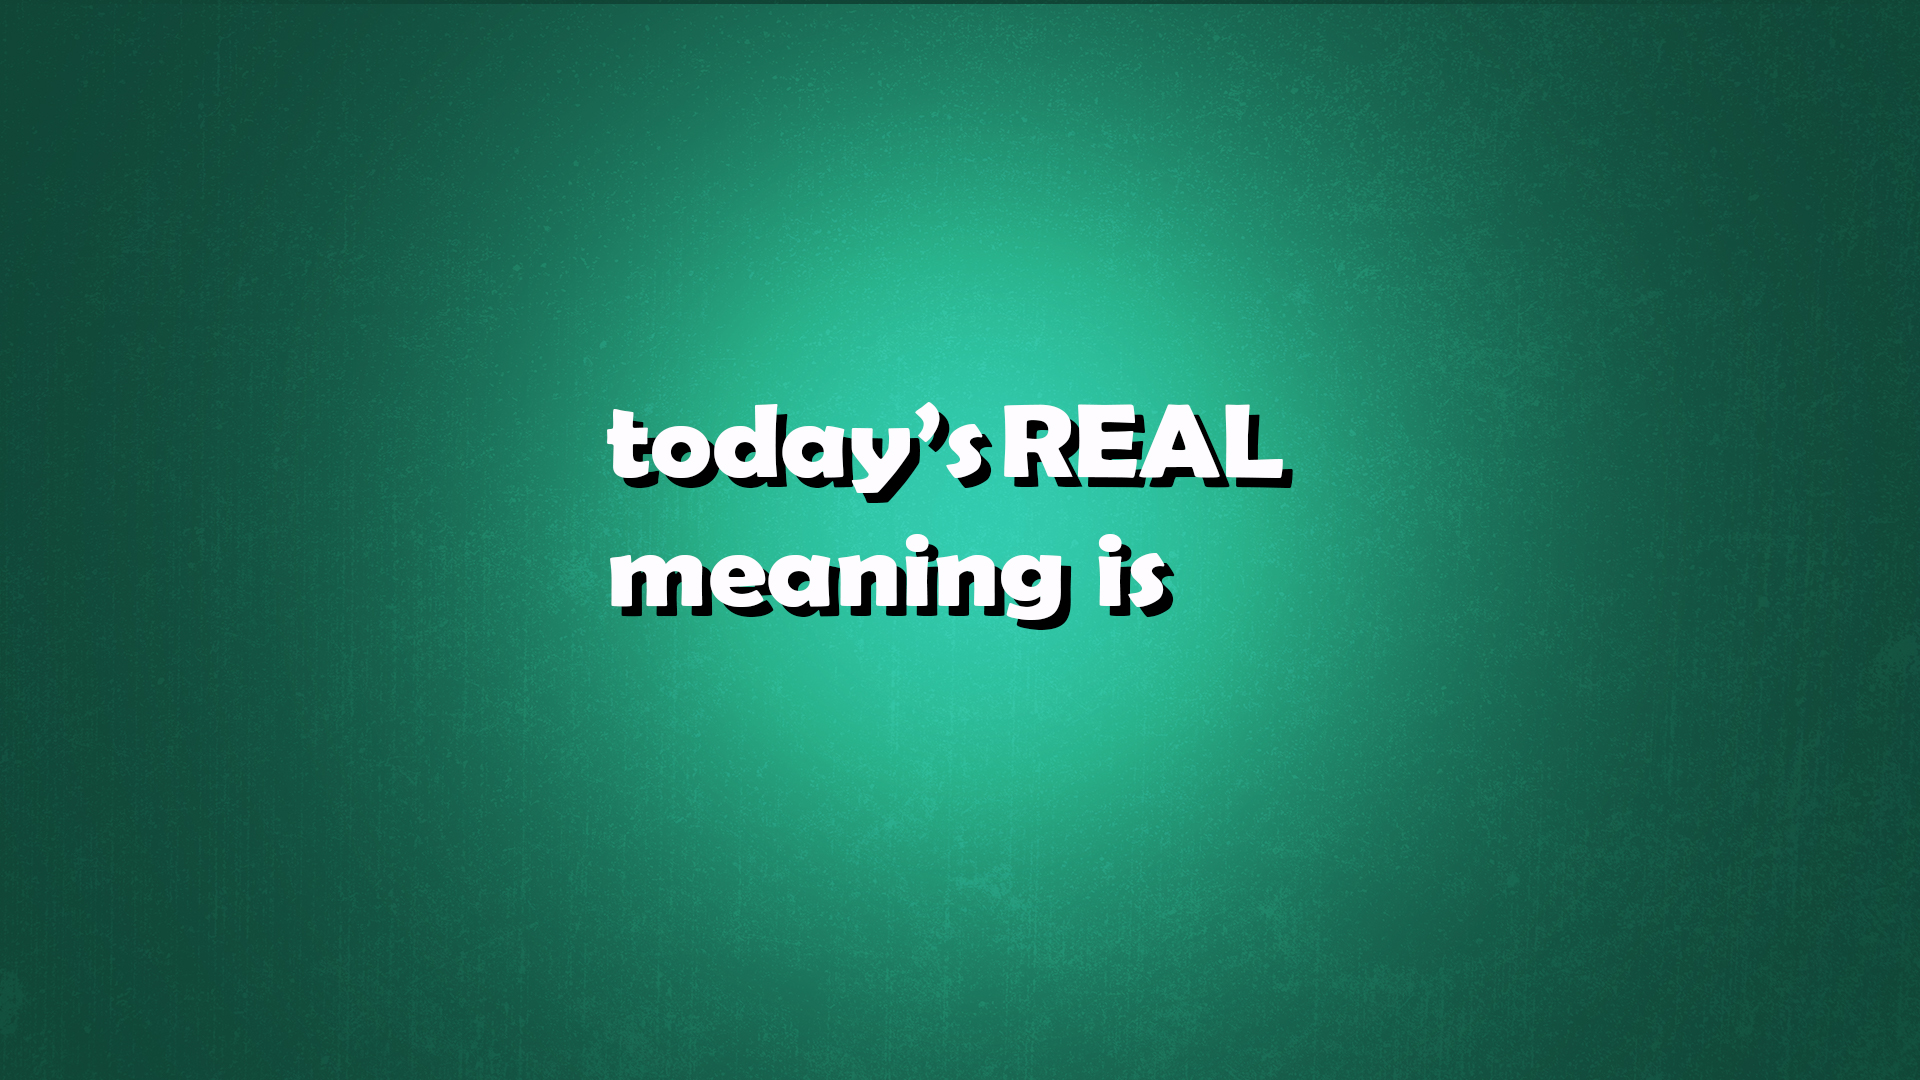 today's Real meaning.jpg